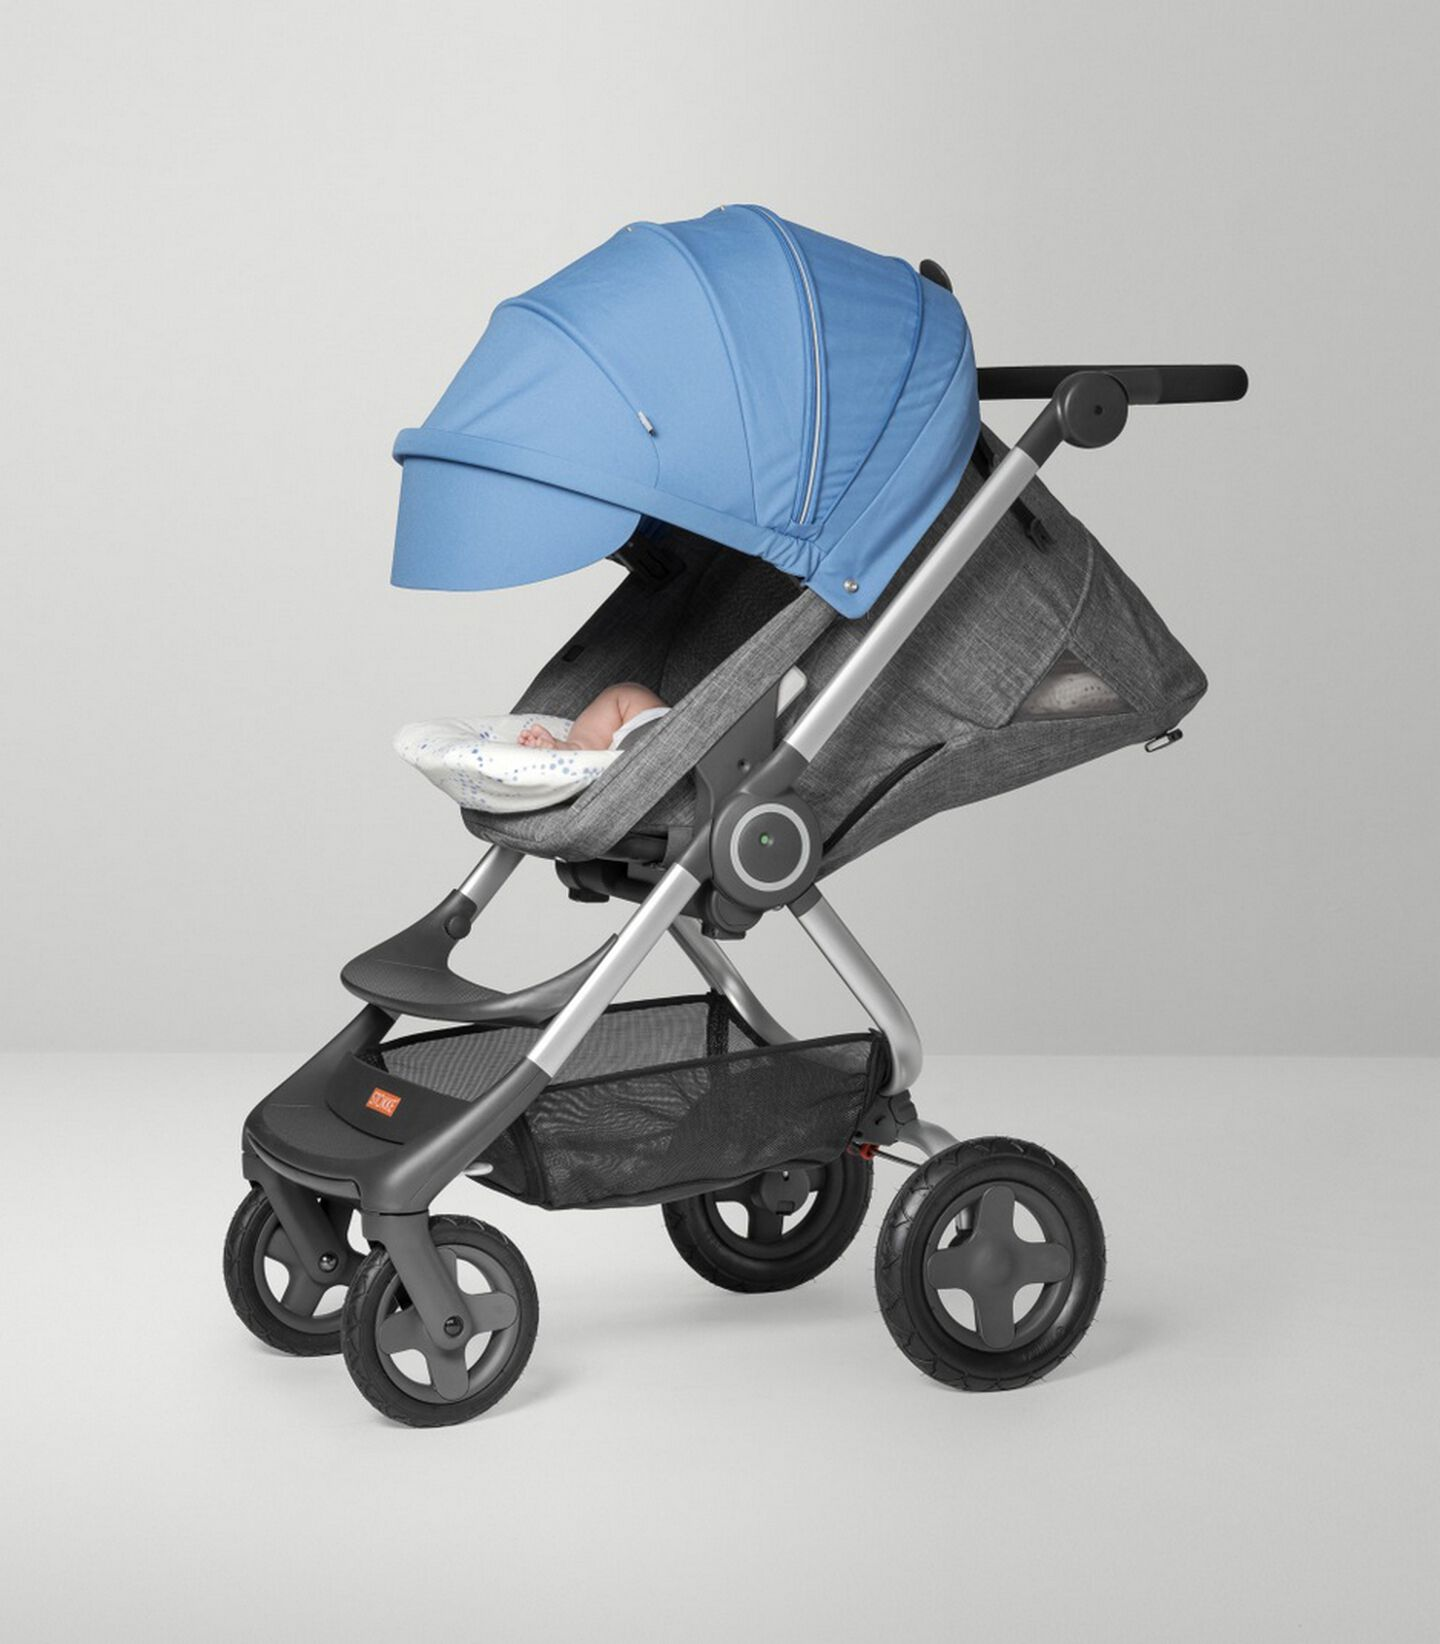 Stokke Scoot™ Seat.Black Melange/Blue. Sleep position.